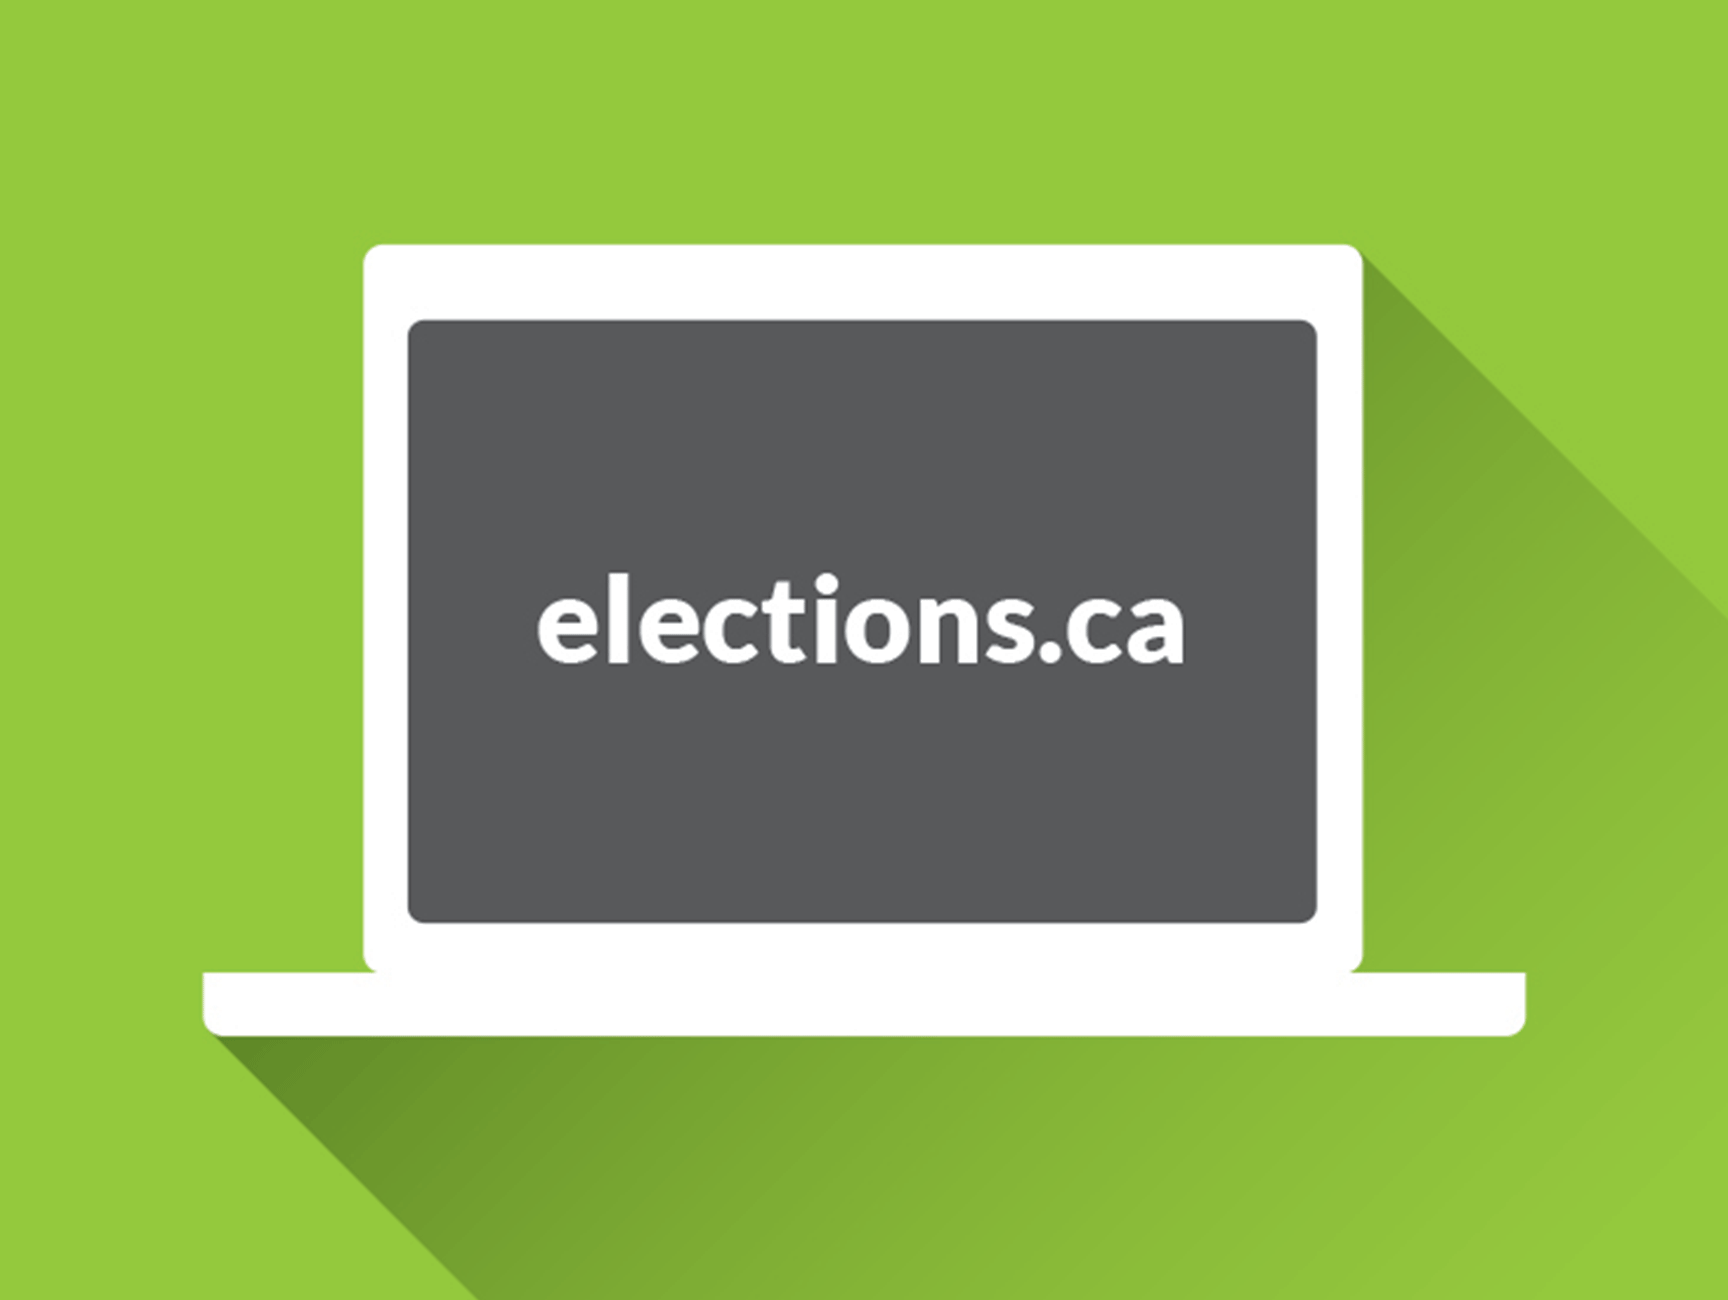 Illustration of a laptop accessing elections.ca